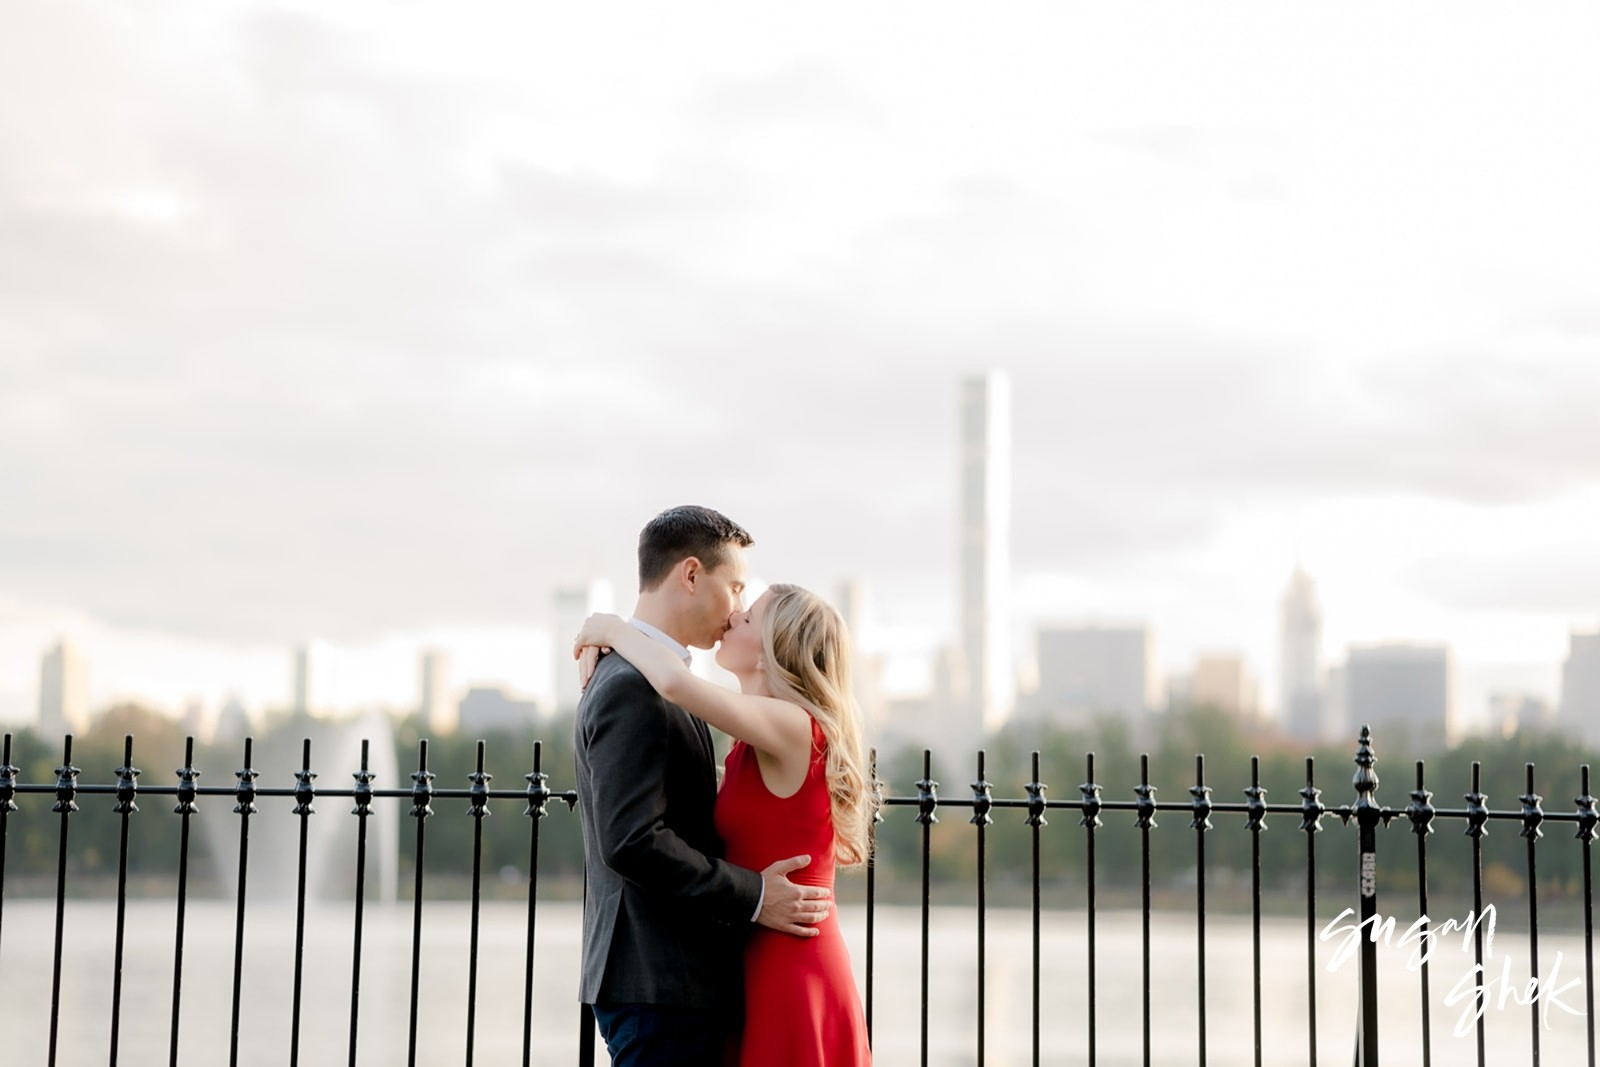 Central Park Reservoir Engagement Shoot, NYC Engagement Photographer, Engagement Session, Engagement Photography, Engagement Photographer, NYC Wedding Photographer